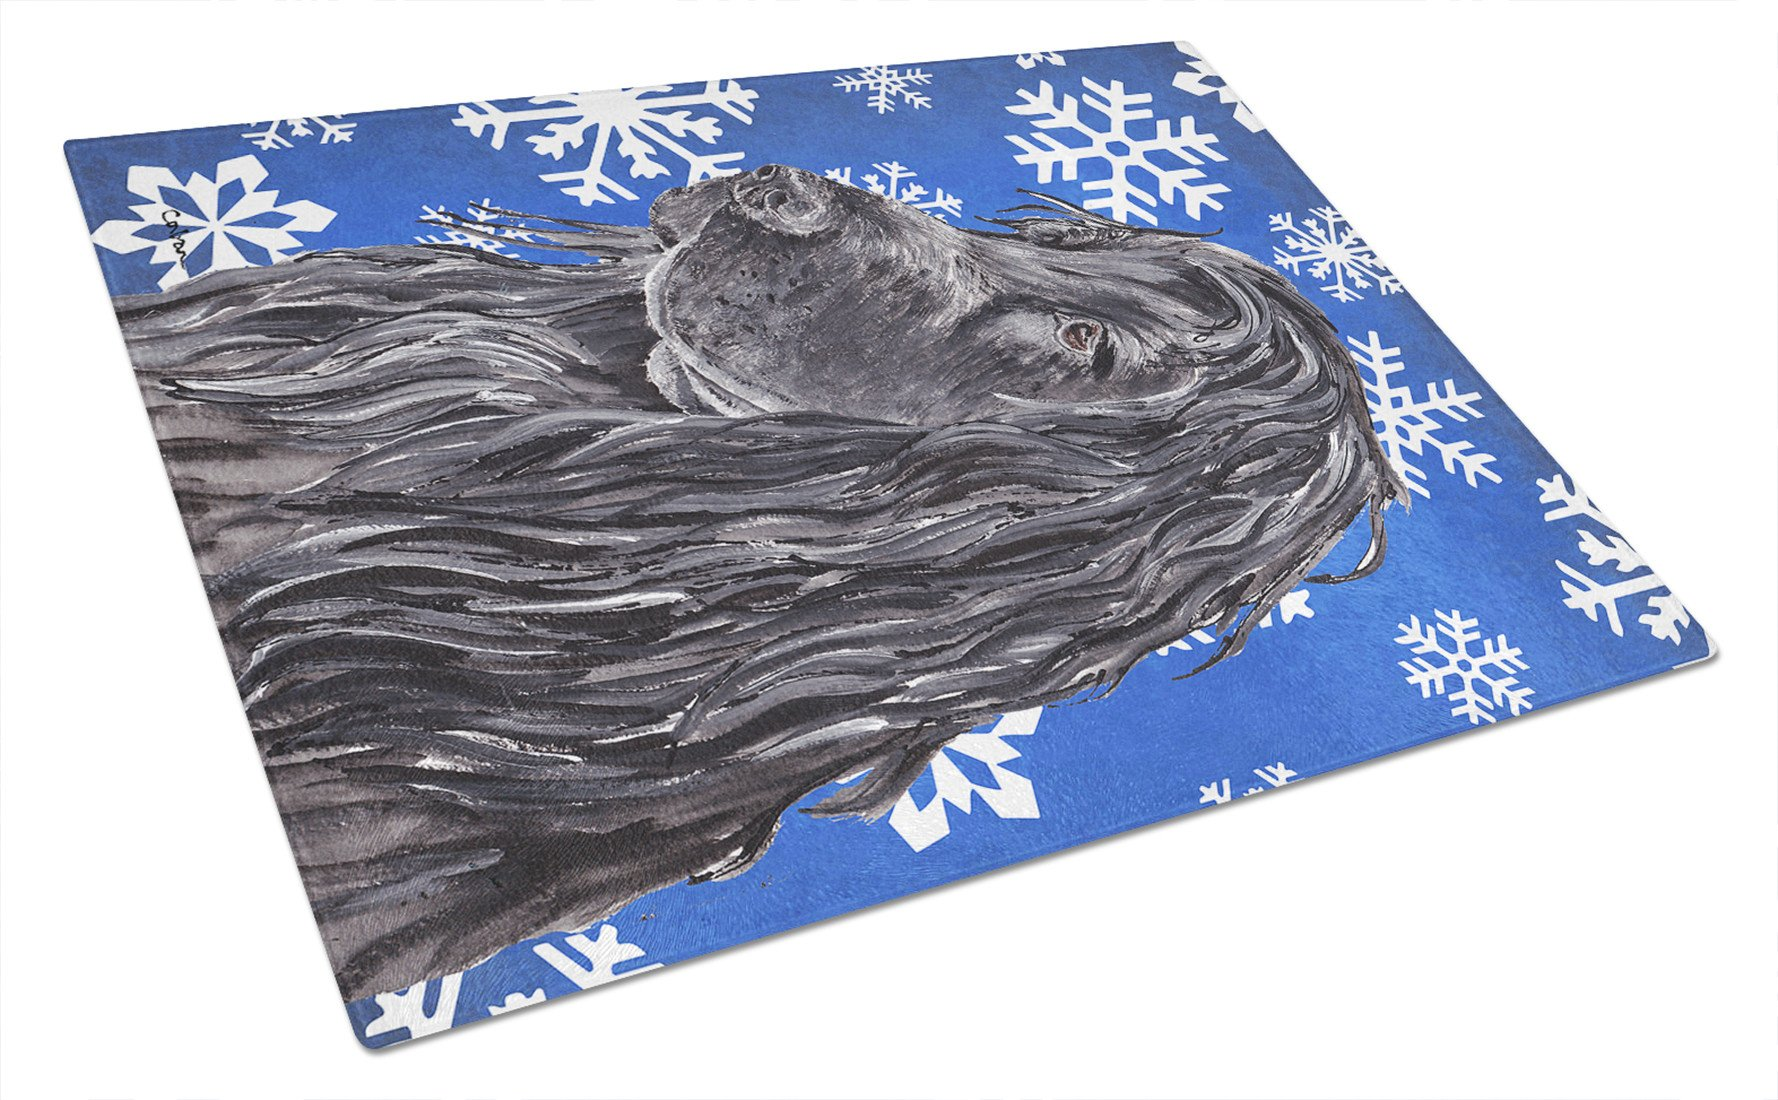 English Cocker Spaniel Blue Snowflake Winter Glass Cutting Board Large by Caroline's Treasures